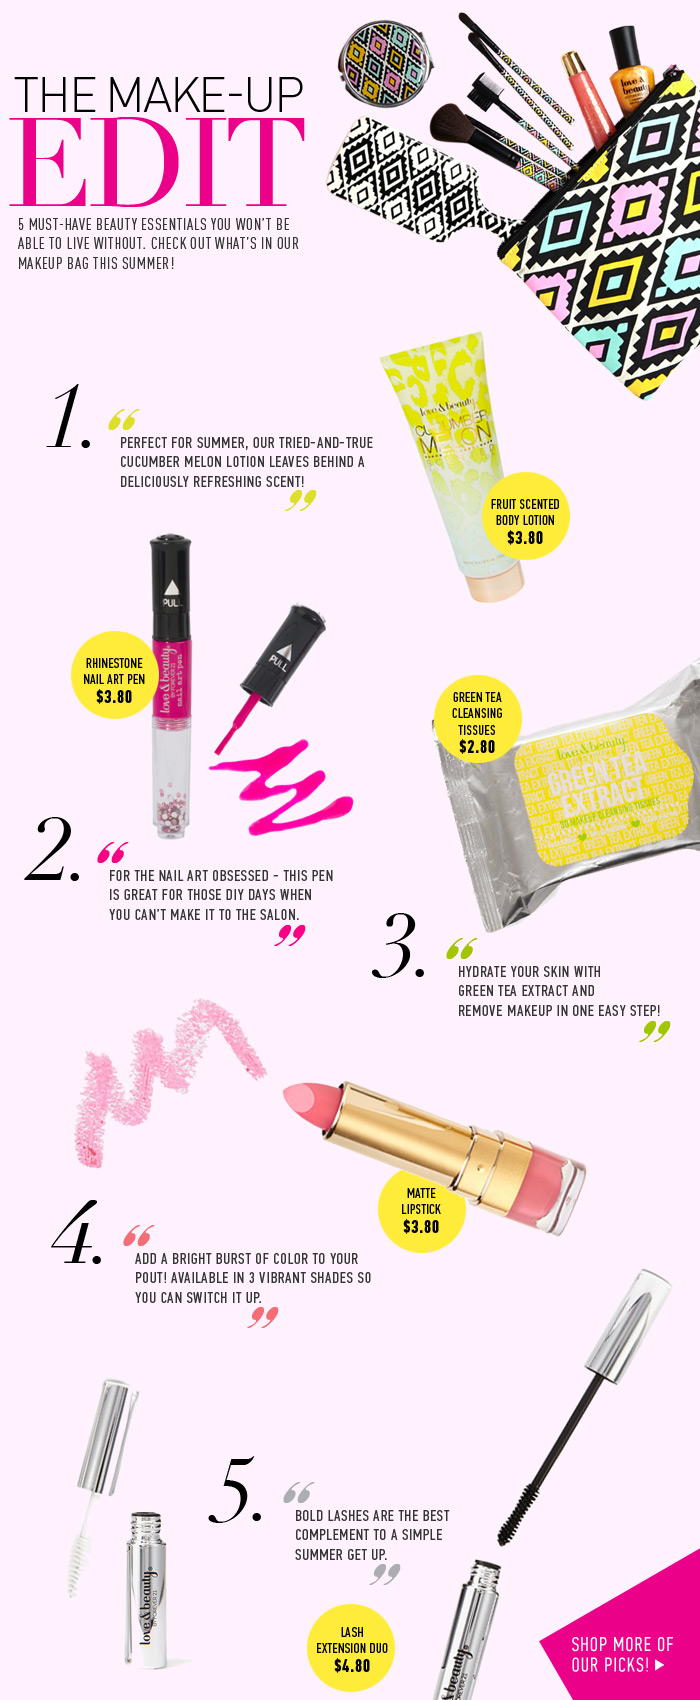 Just In! 5 Beauty Essentials You Can't Live Without! - Shop Now